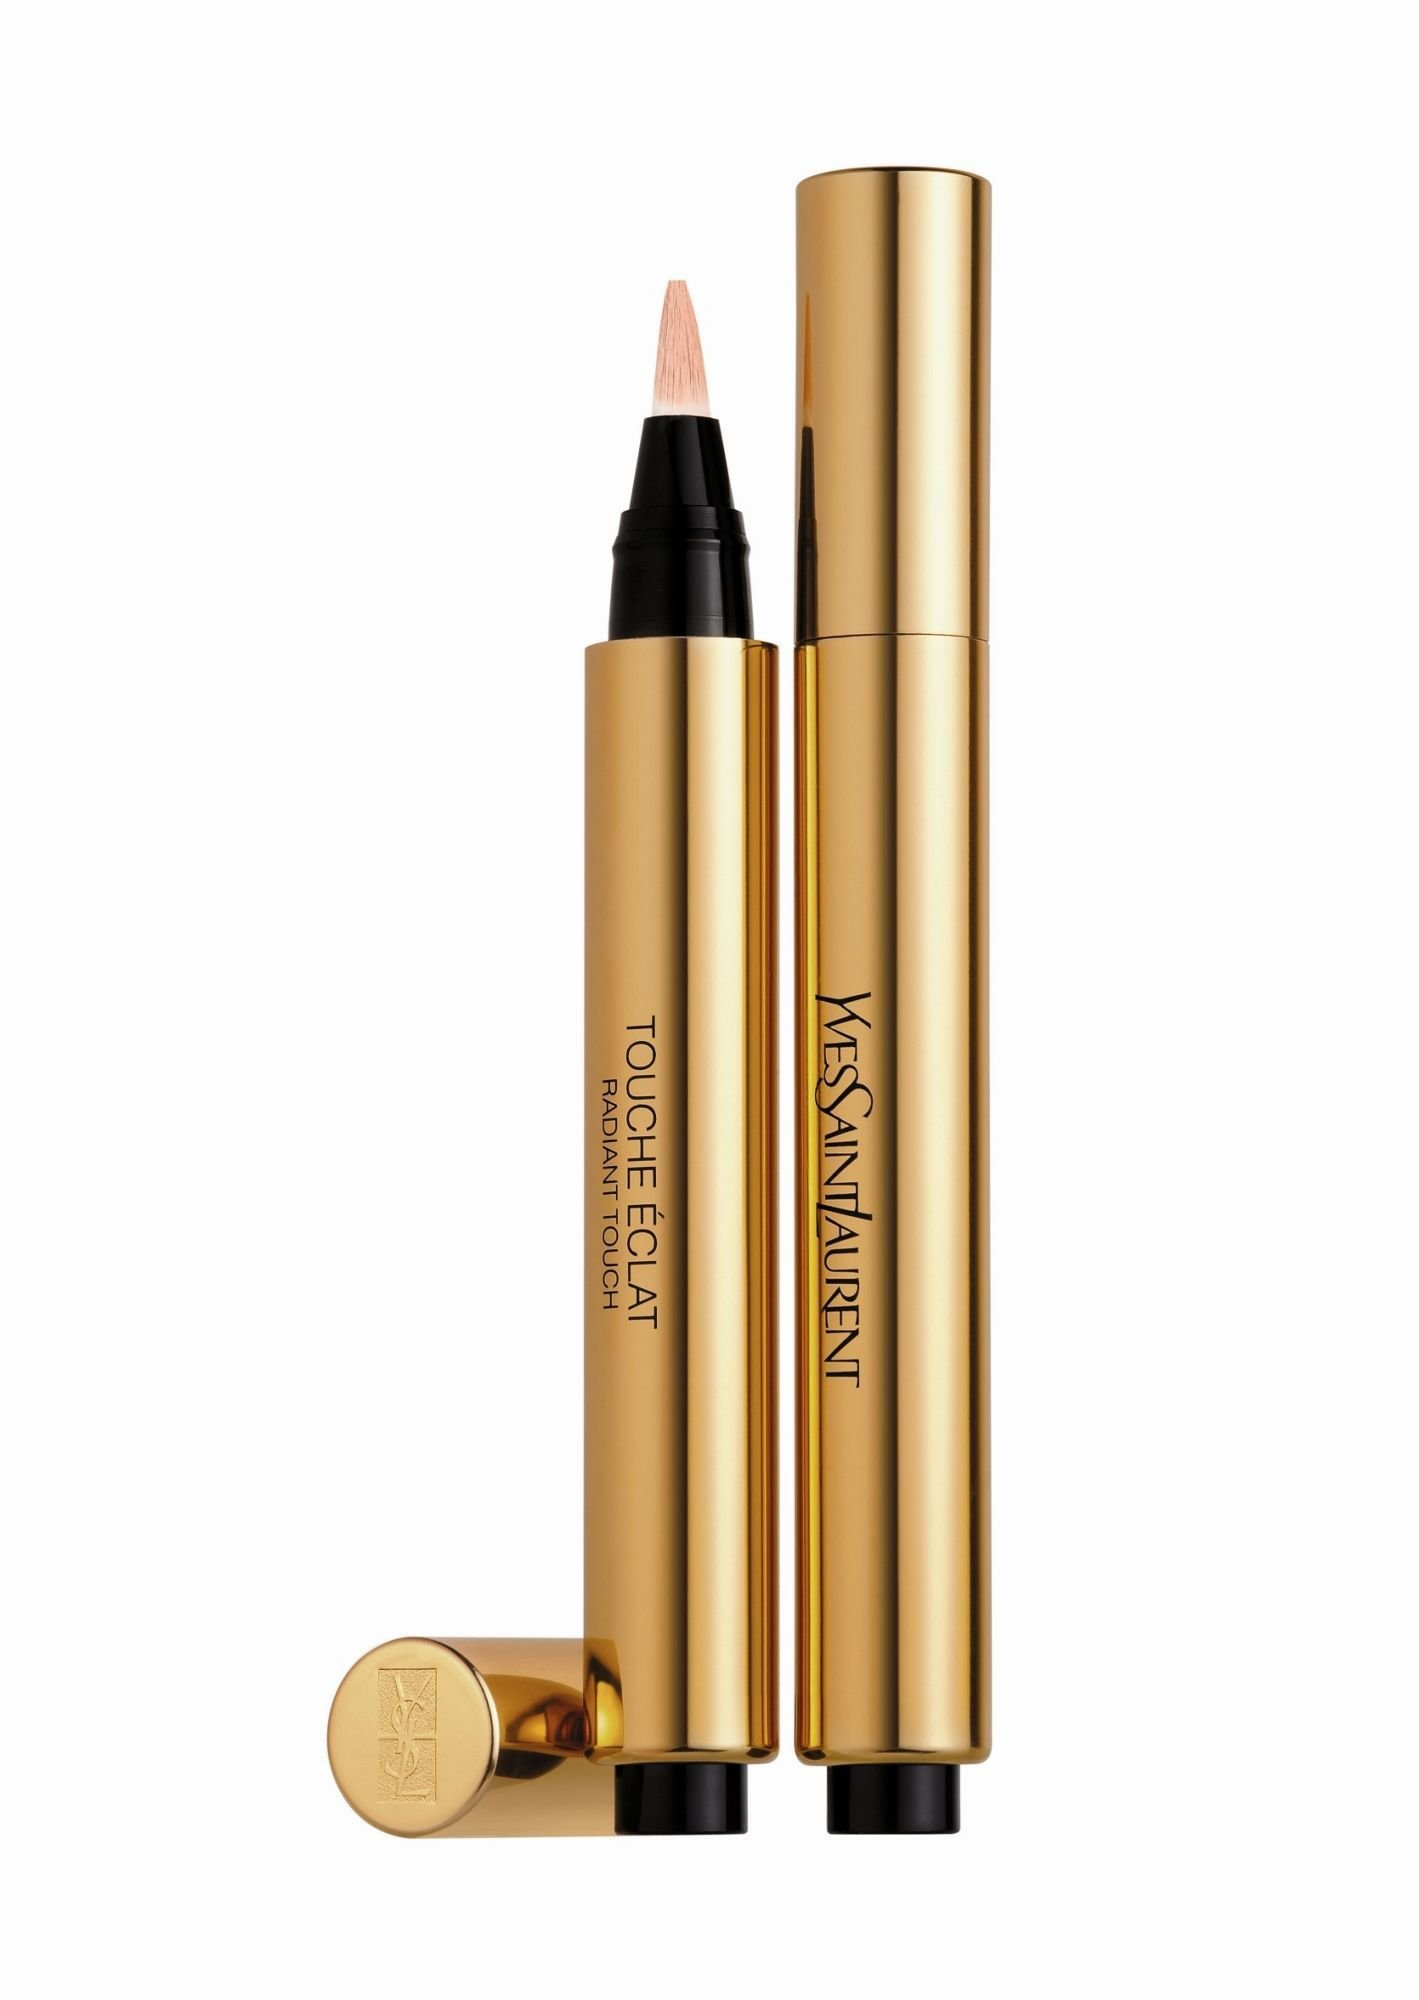 Yves Saint Laurent Touche Eclat Cosmetic 2,5ml č. 2,5